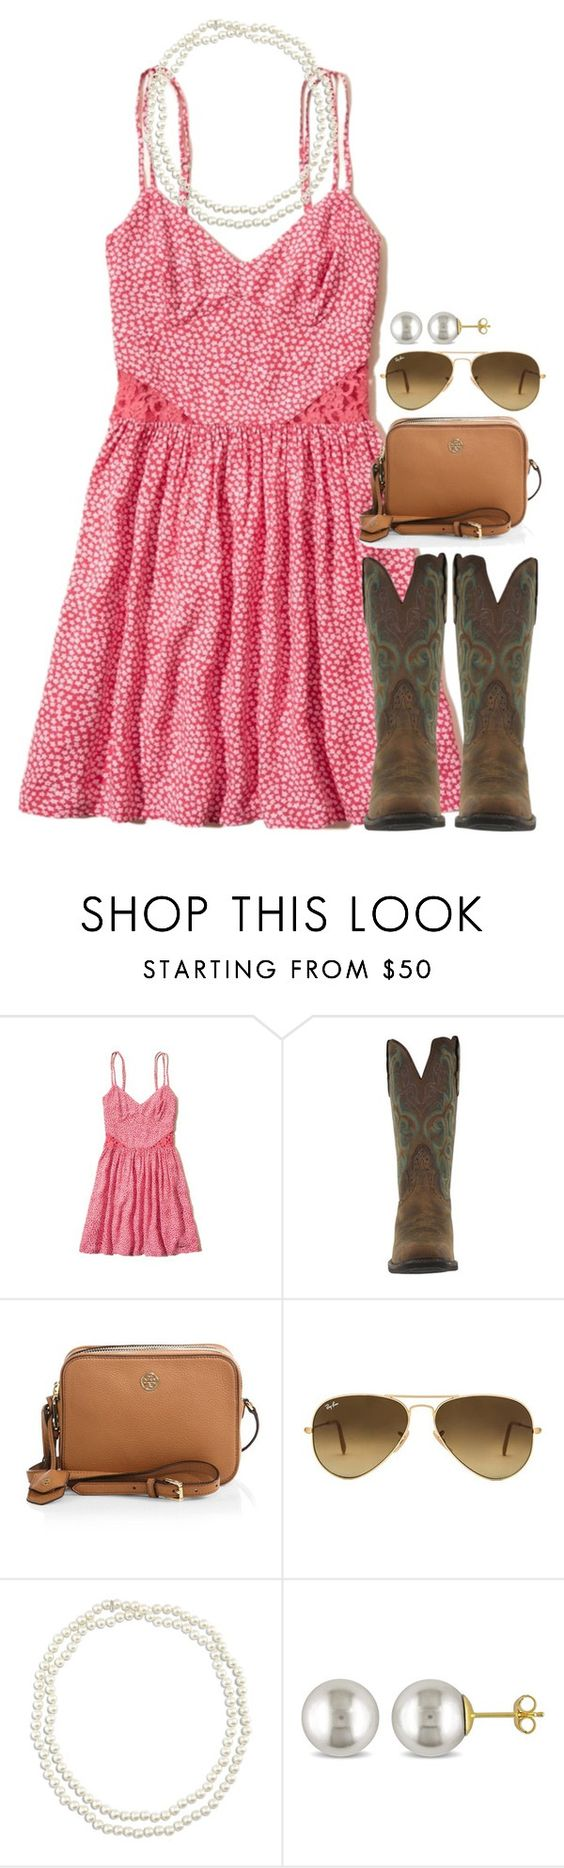 """Follow the sunshine"" by preppy-horsegirl ❤ liked on Polyvore featuring Hollister Co., Tory Burch, Ray-Ban, Chico's and Miadora"